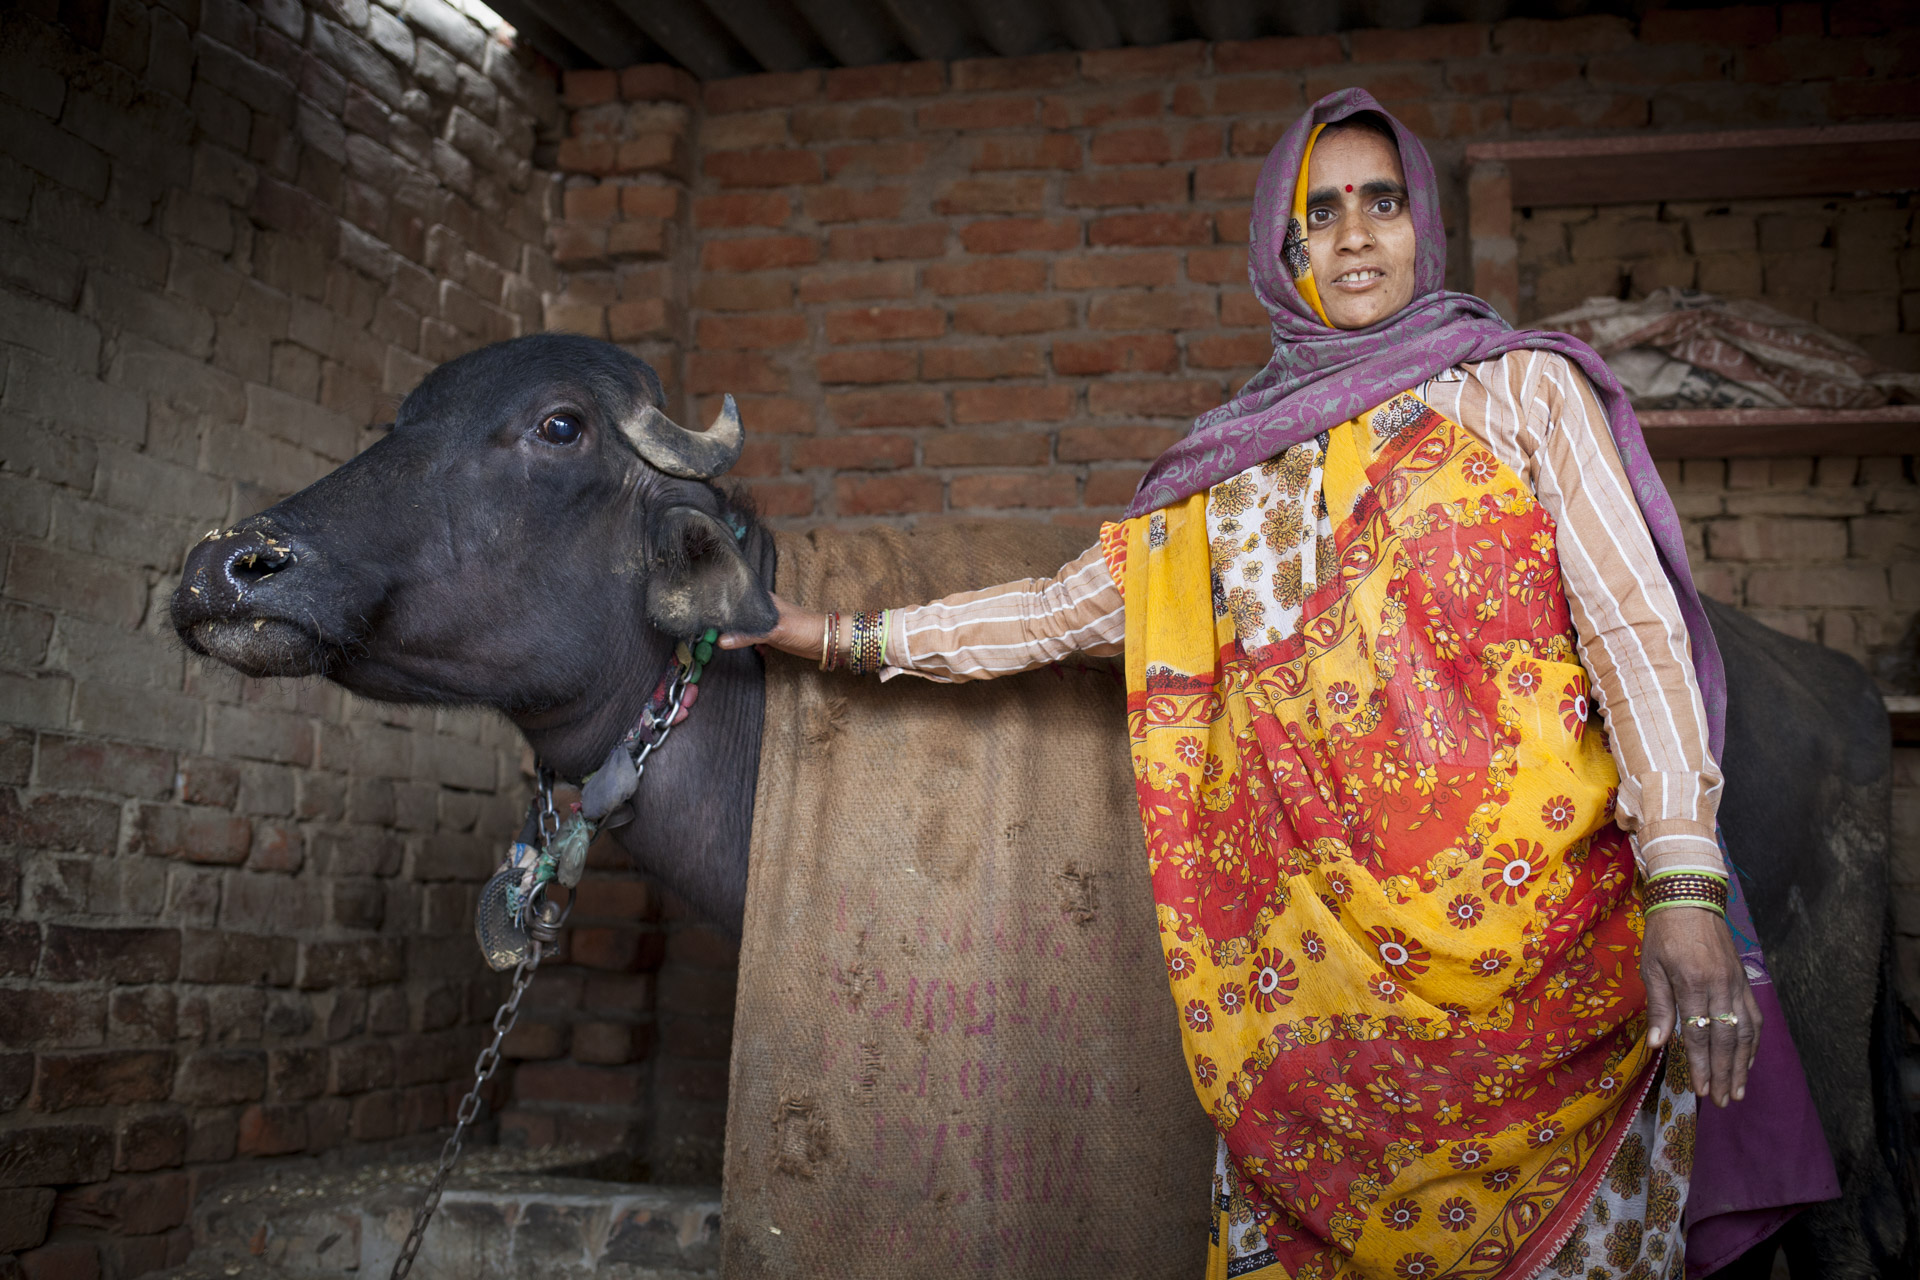 Madhupur Village near Agra, Uttar Pradesh, India. Annar Devi and her family are cousins to Harish. They keep a buffalo and calf, a horse and goats in the stable and yard outside their house.